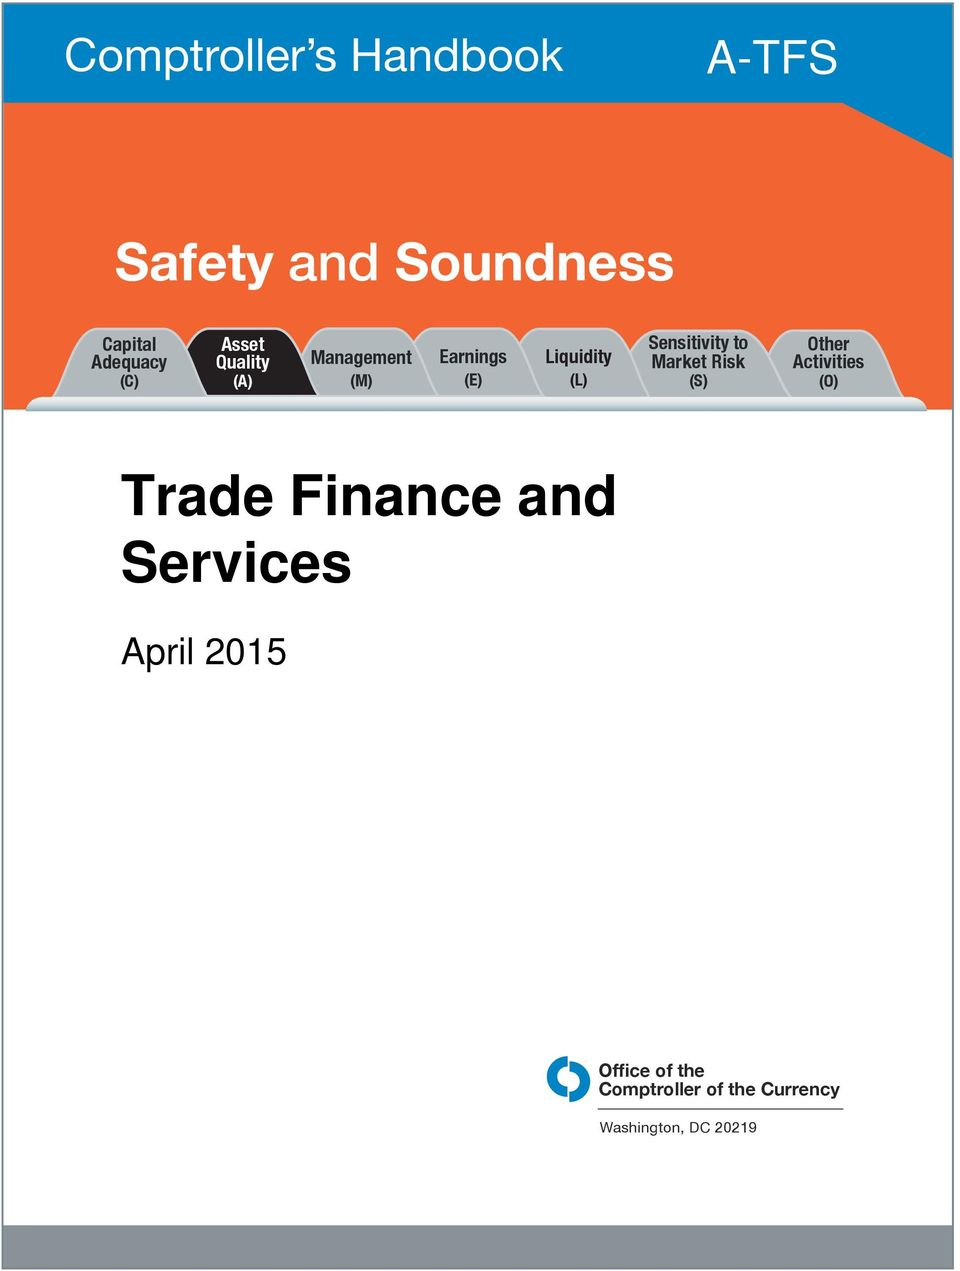 Sensitivity to Market Risk (S) Other Activities (O) Trade Finance and